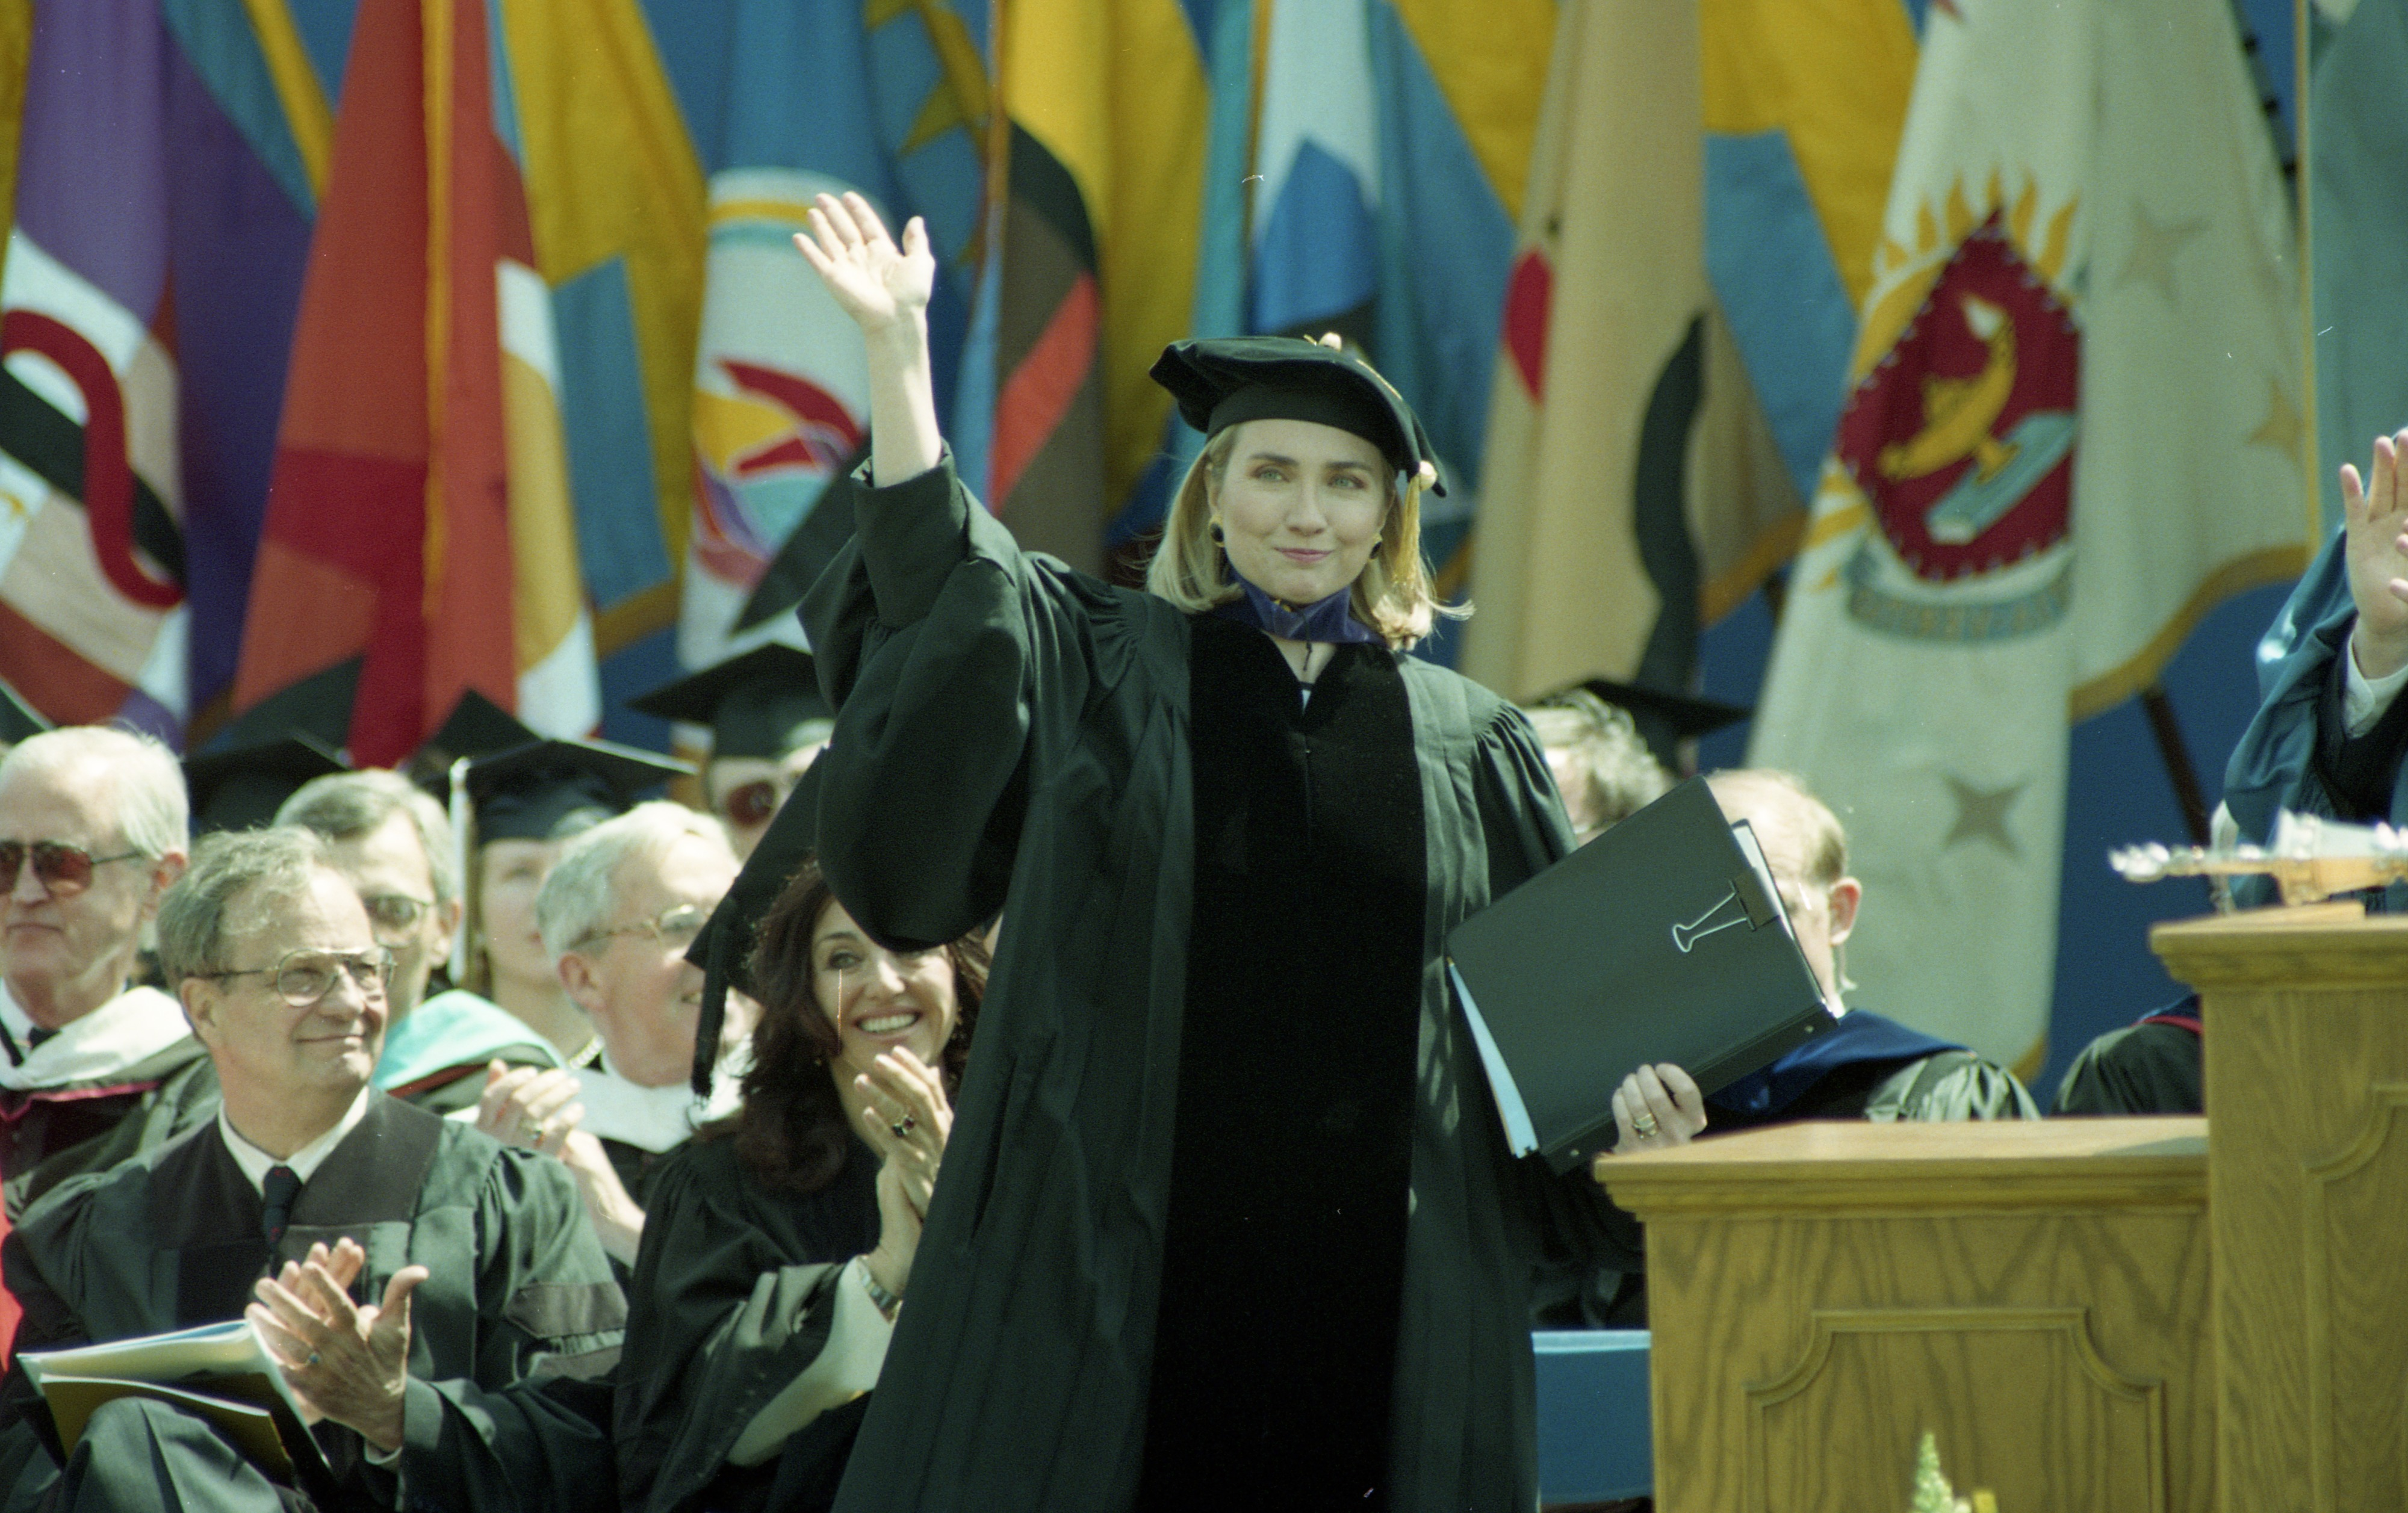 First Lady Hillary Clinton Applauded After Speech at University of Michigan Commencement, May 1993 image